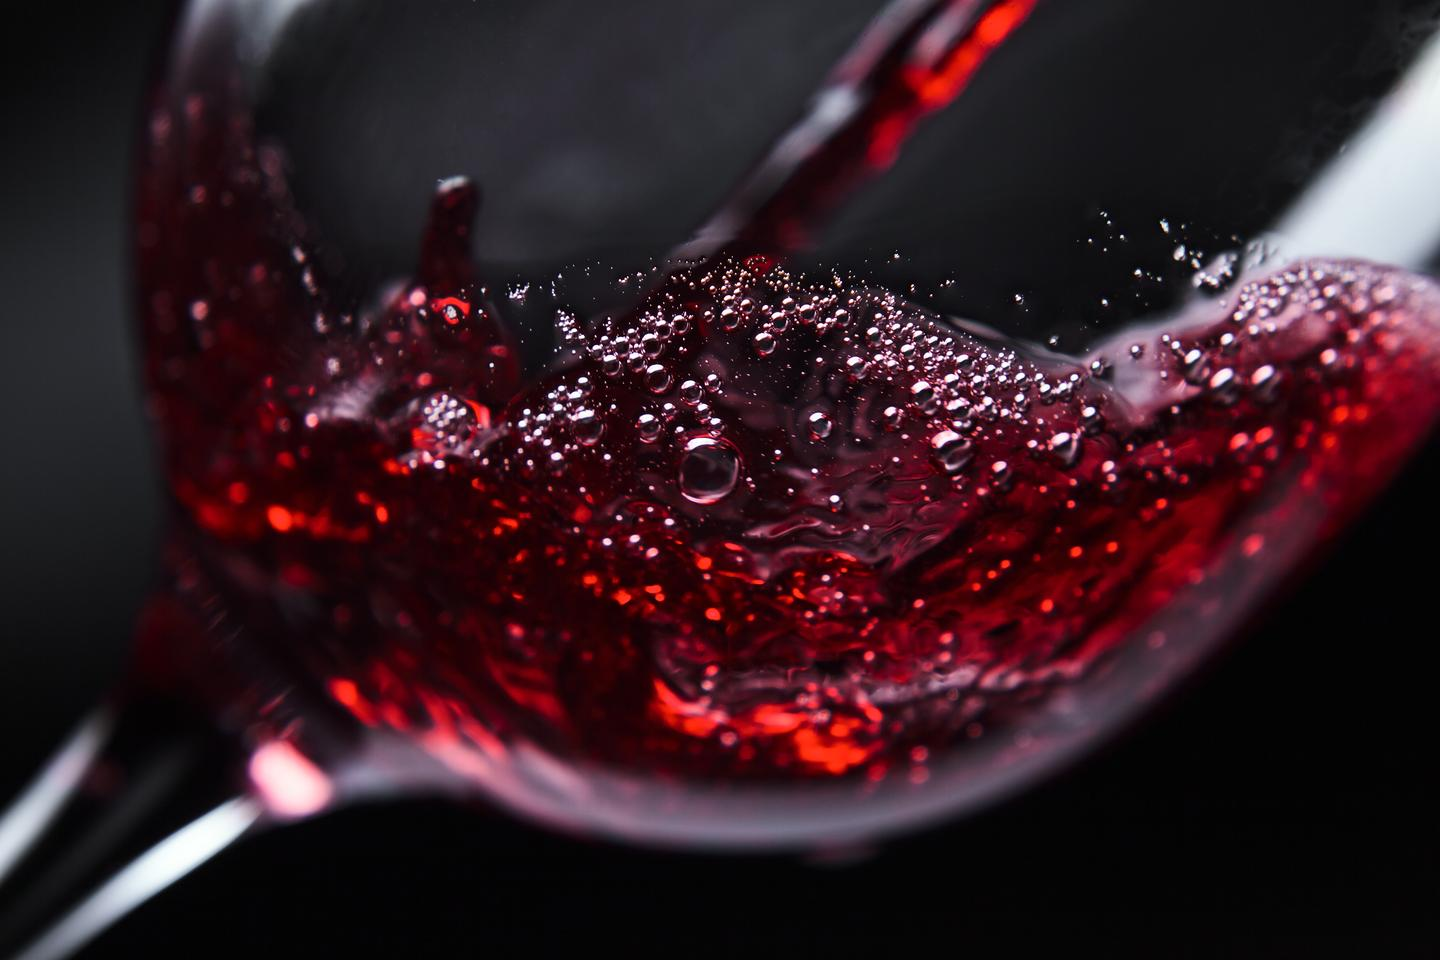 Should there be too many alkylmethoxypyrazines in your wine, try adding some putative imprinted magnetic polymer nanoparticles